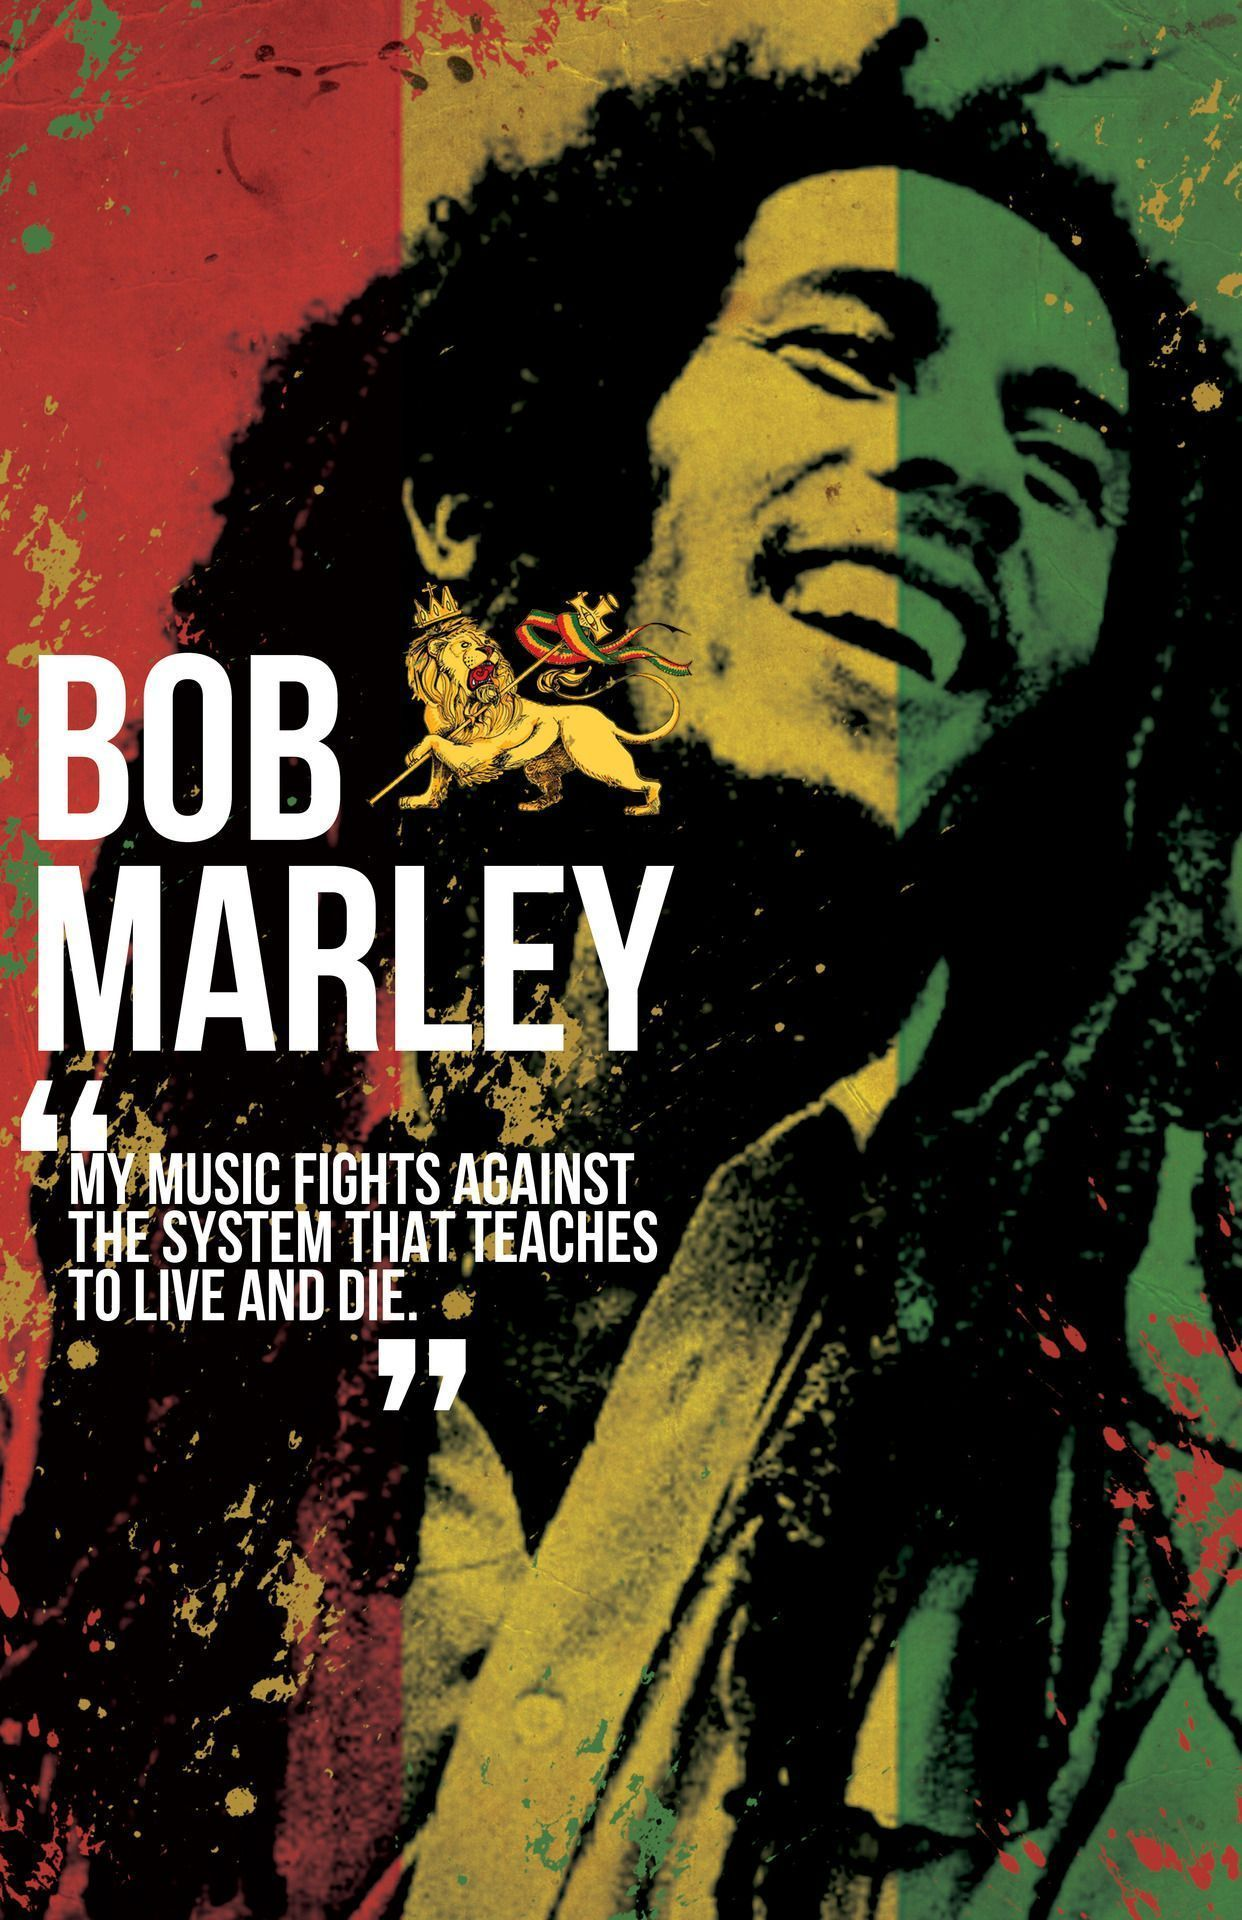 Bob Marley HD Wallpapers Wallpaper Bob marley art, Bob